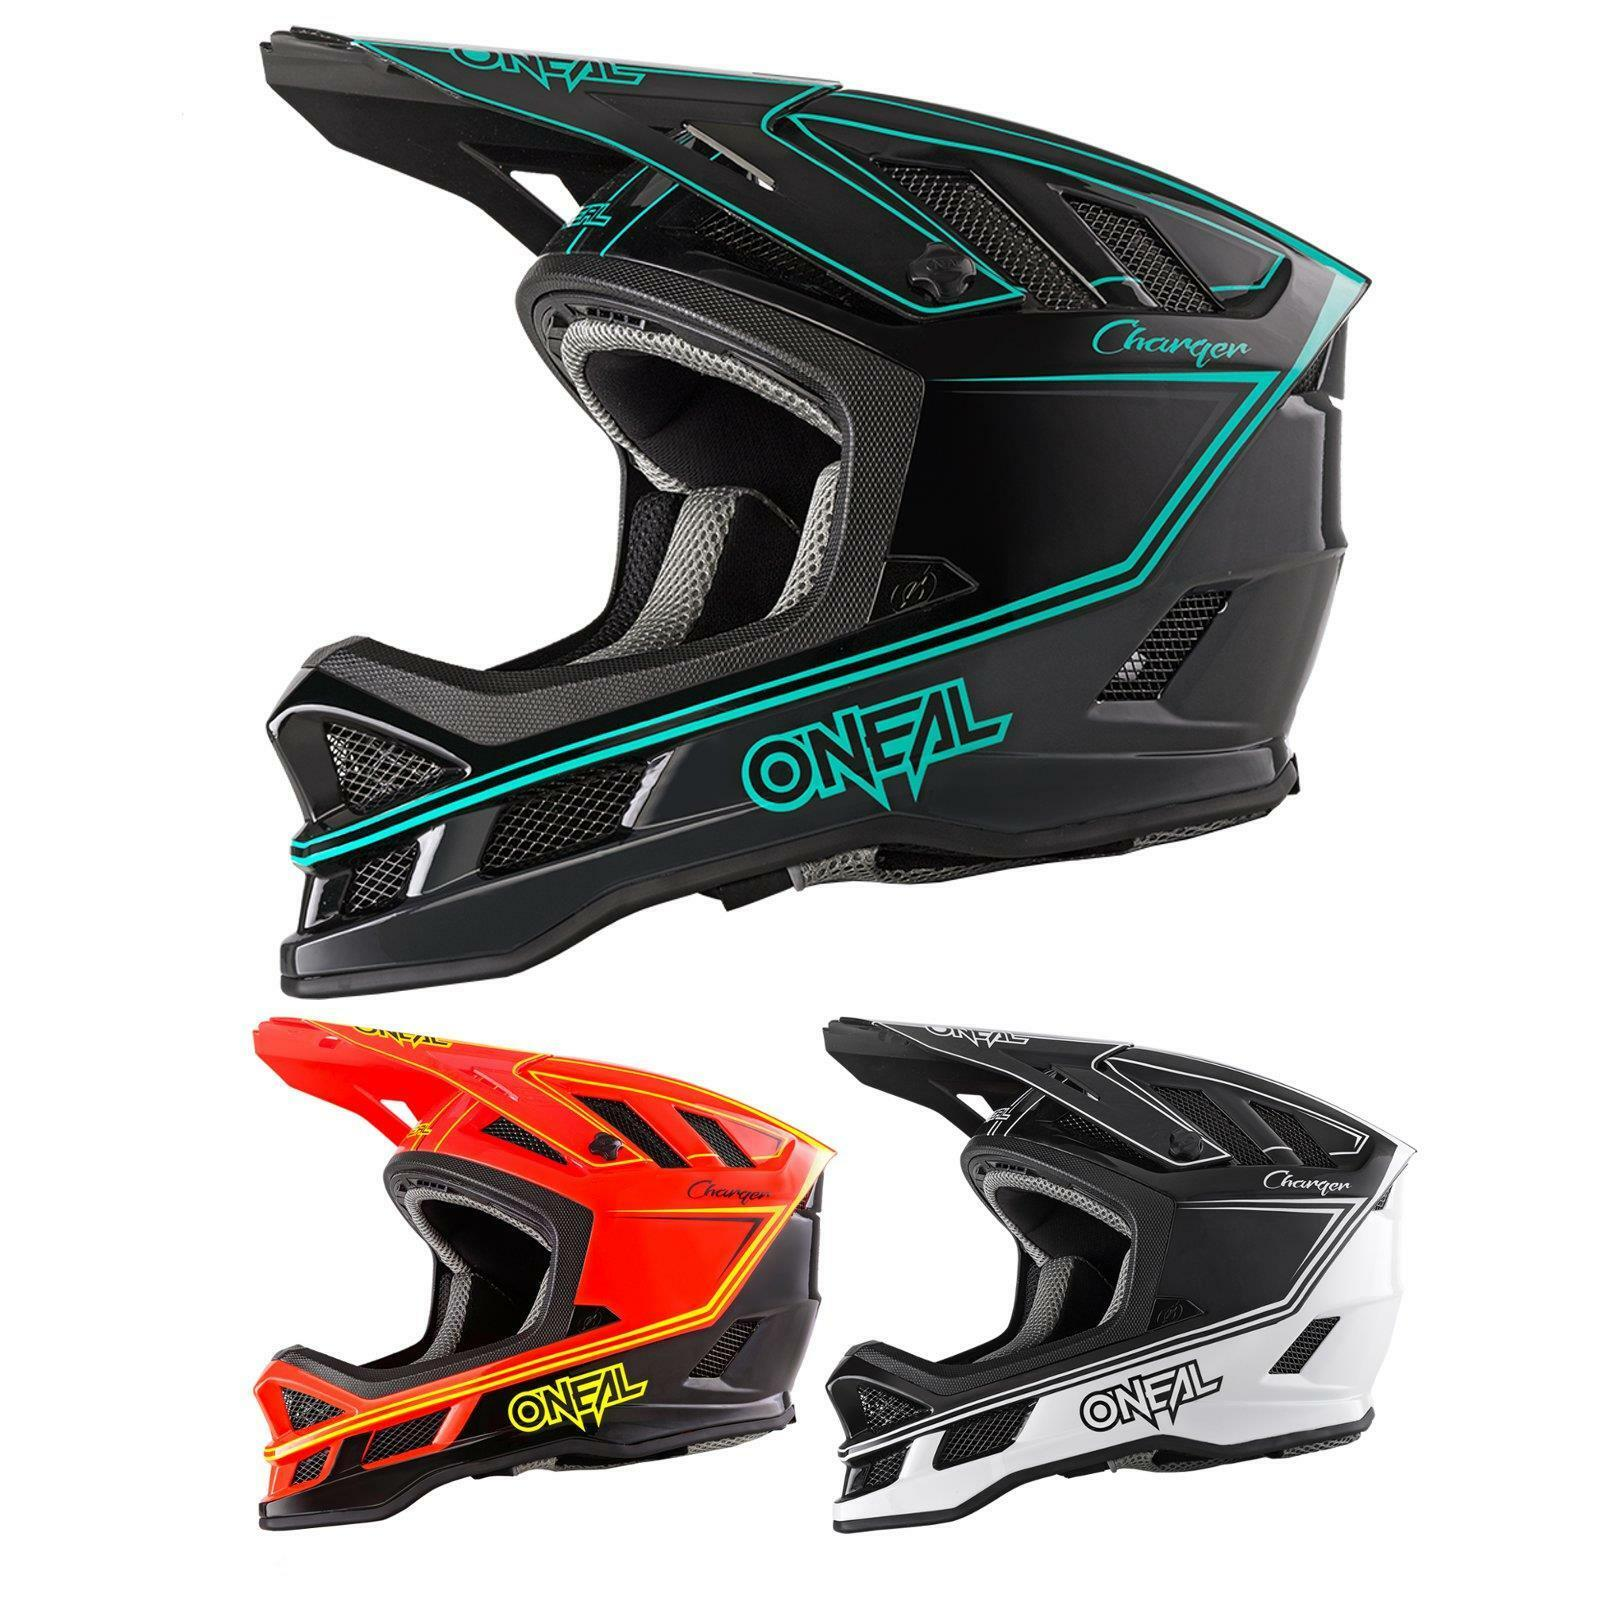 ONeal Blade Charger XXX Helm All Mountain Bike MTB Downhill Downhill Downhill DH FR Fullface FR 94c7ed